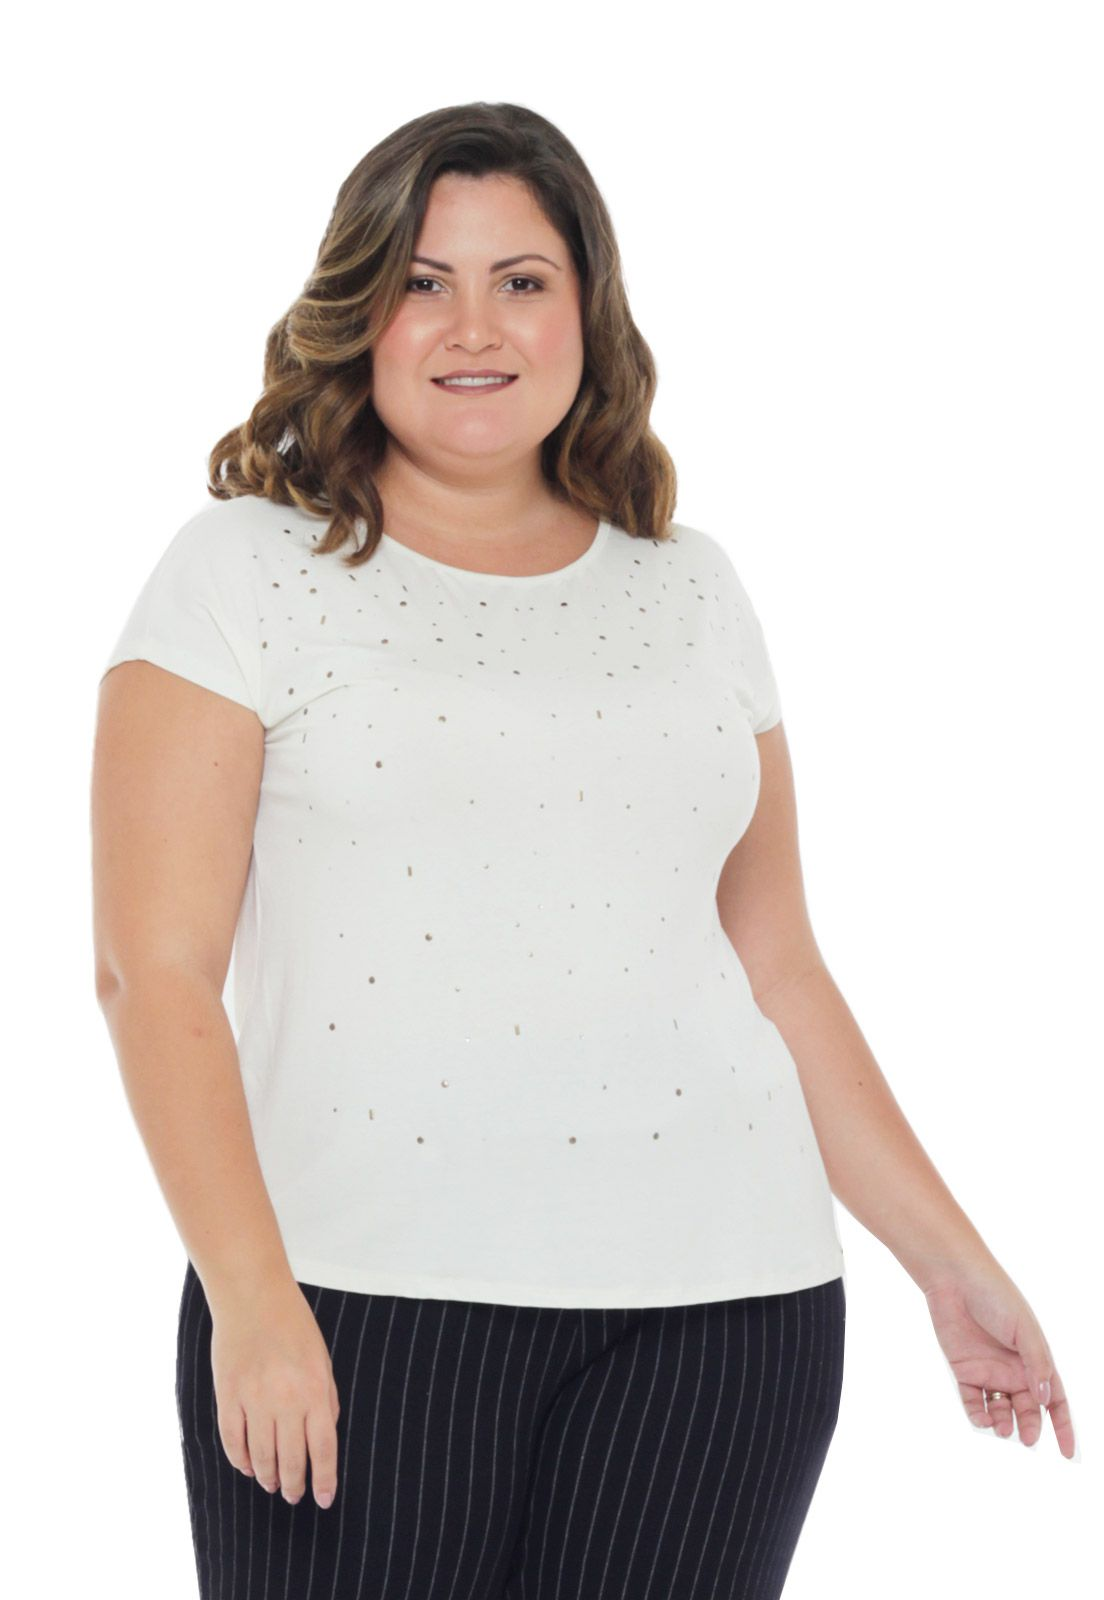 BLUSA PLUS SIZE MANGA CURTA COM TACHAS OFF WHITE